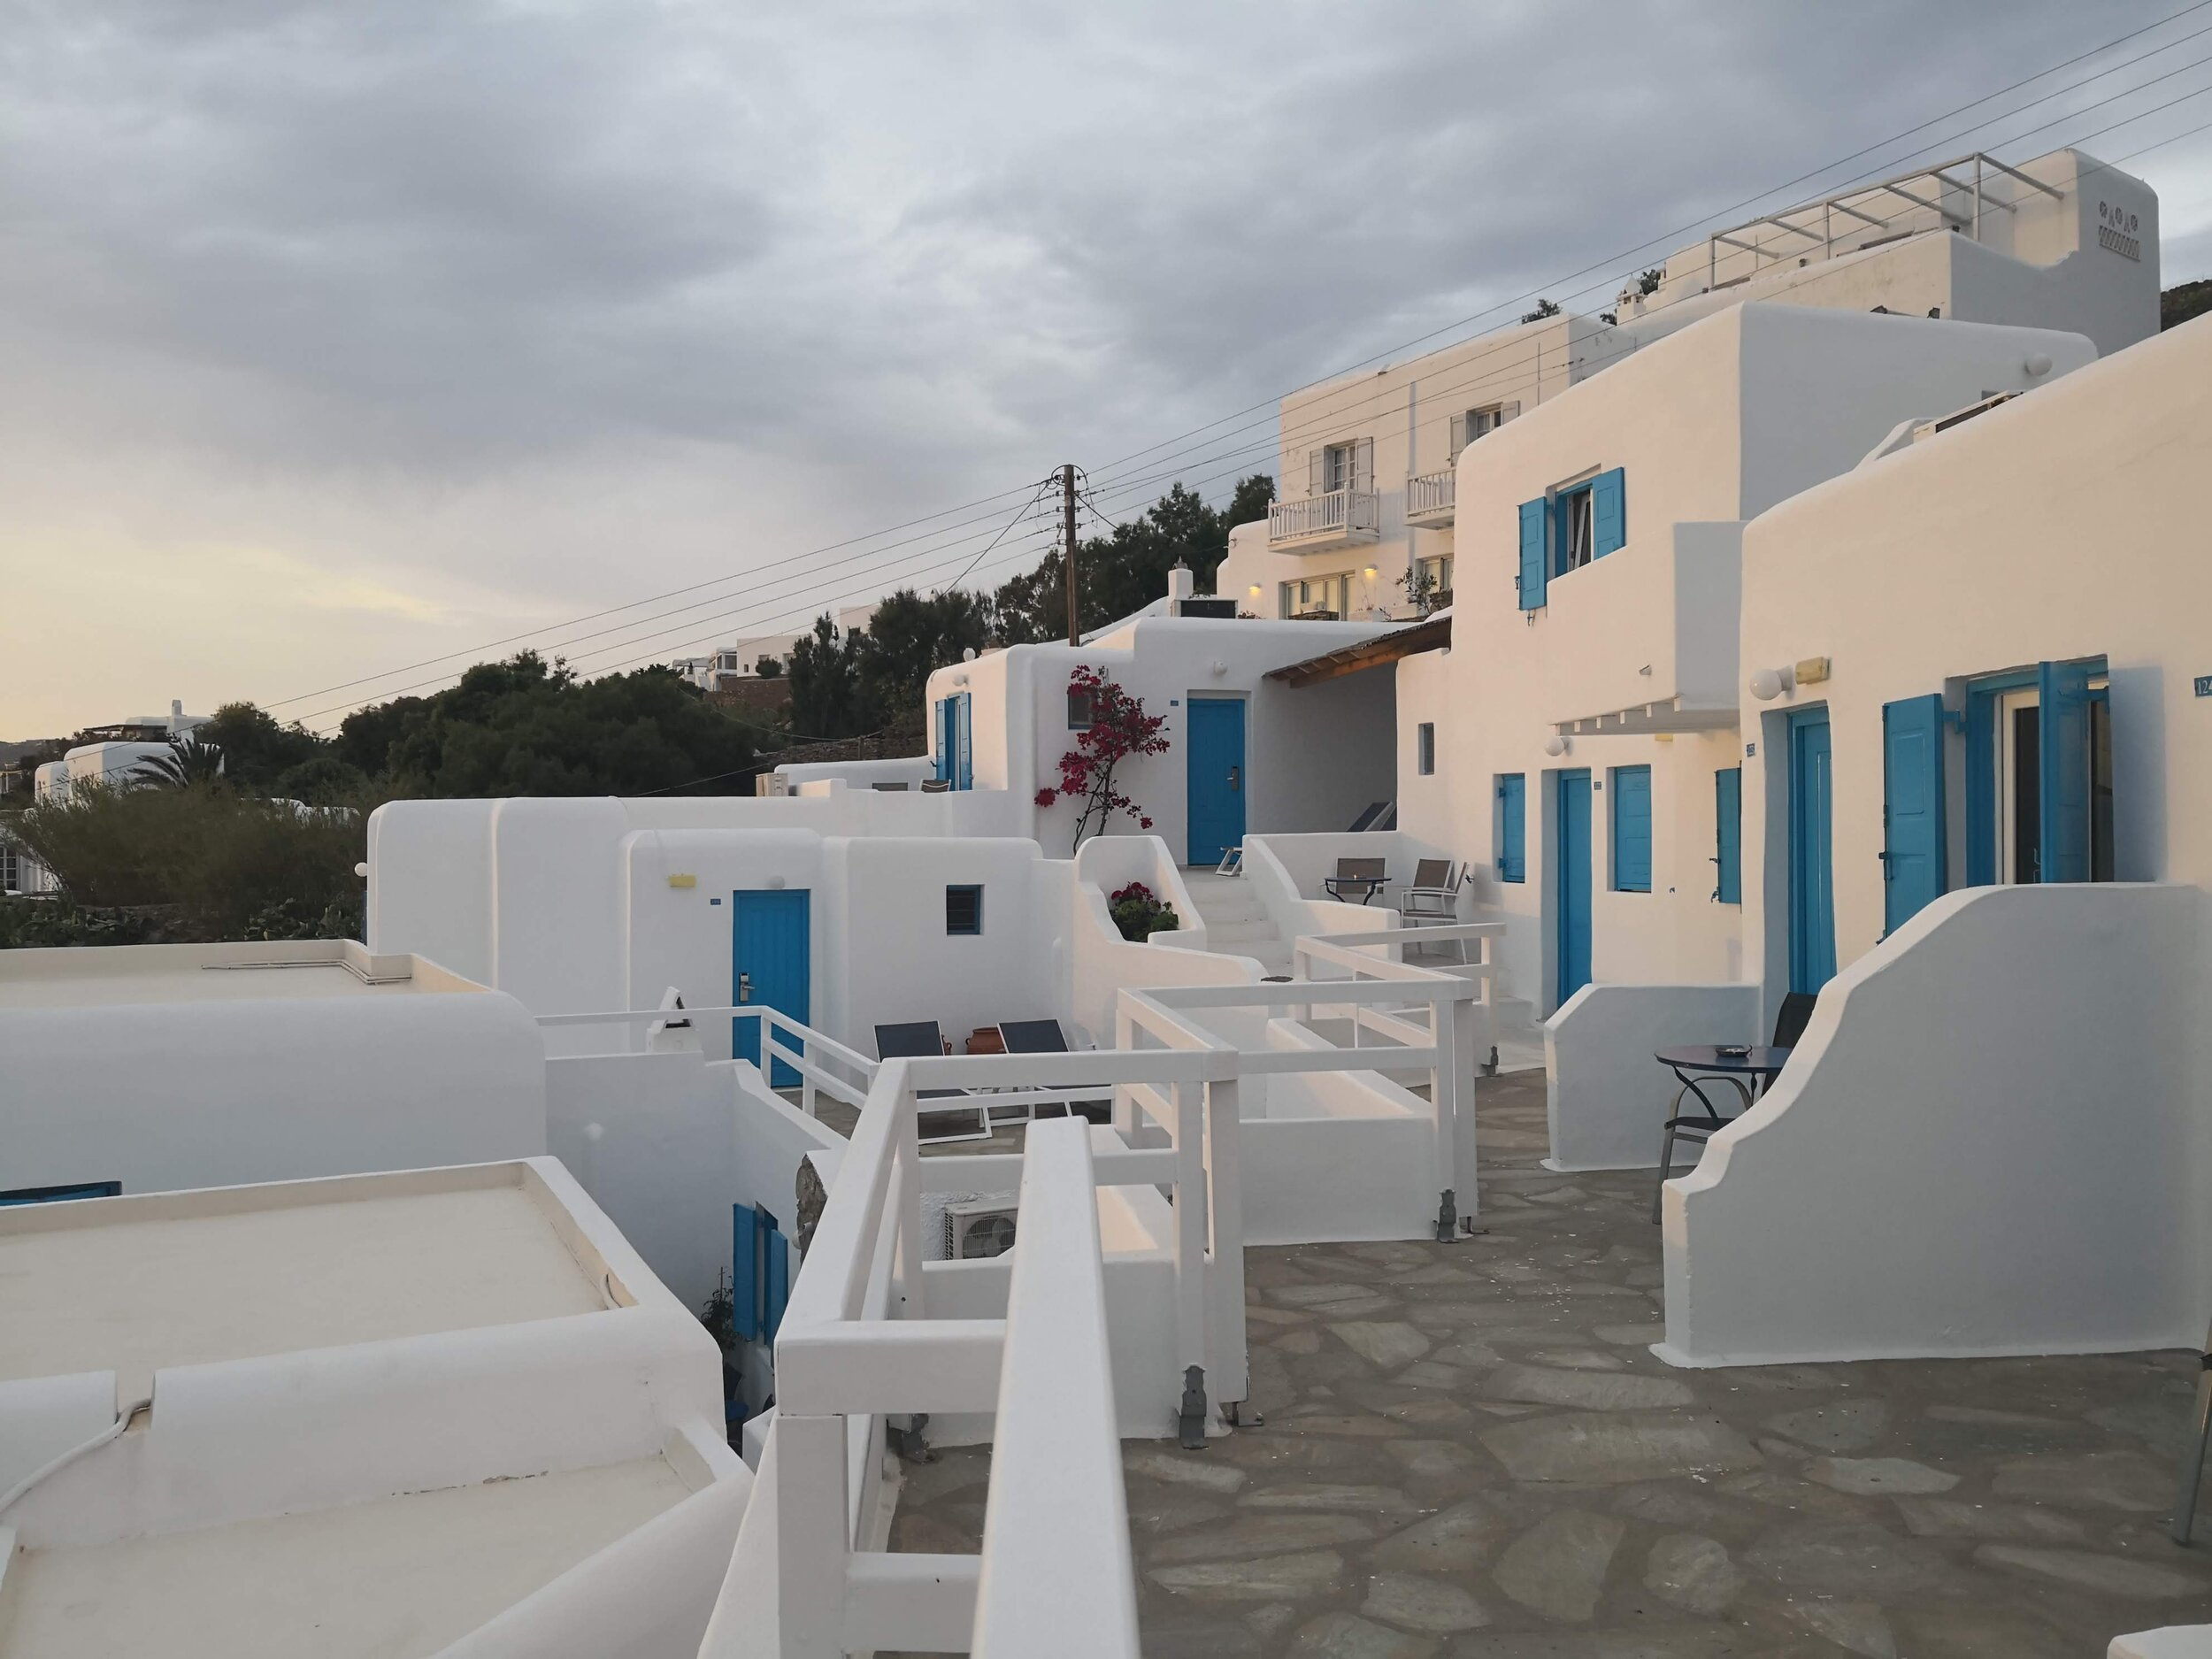 Our hotel in Mykonos!